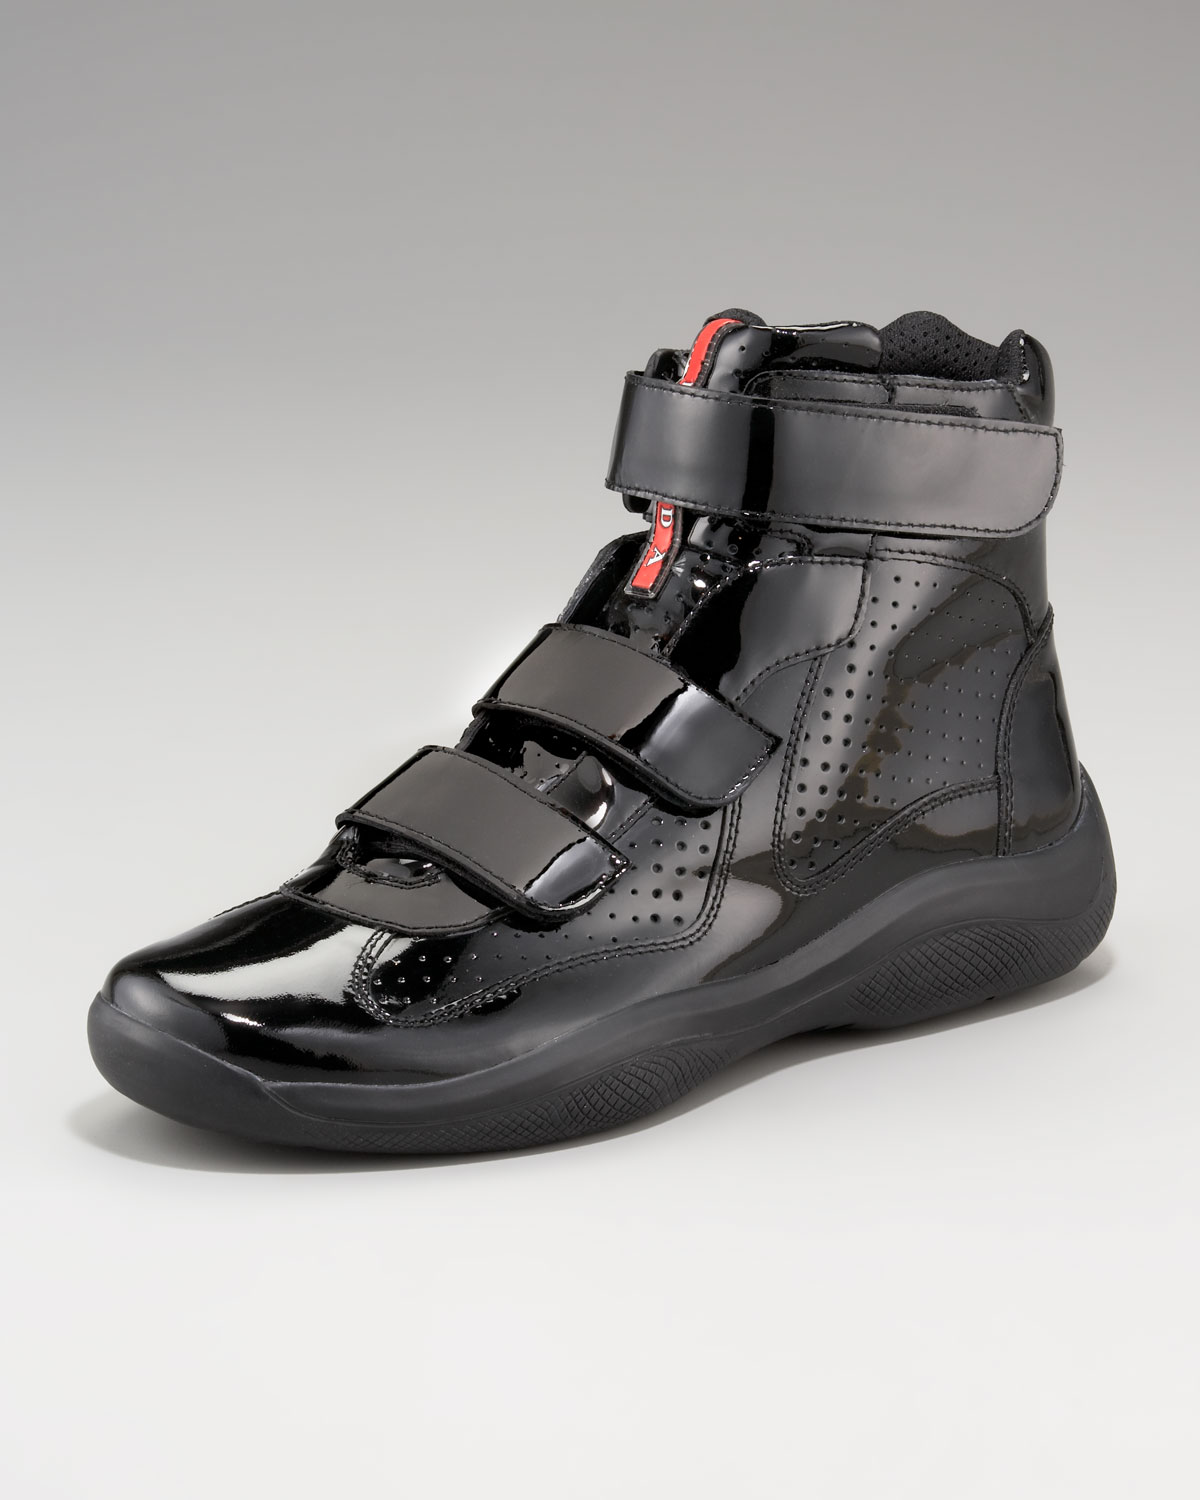 6fa7dfb28f ... lace up luxury shoes 25321 f4b34  new zealand lyst prada patent hi top  sneaker in black for men cc473 9974c